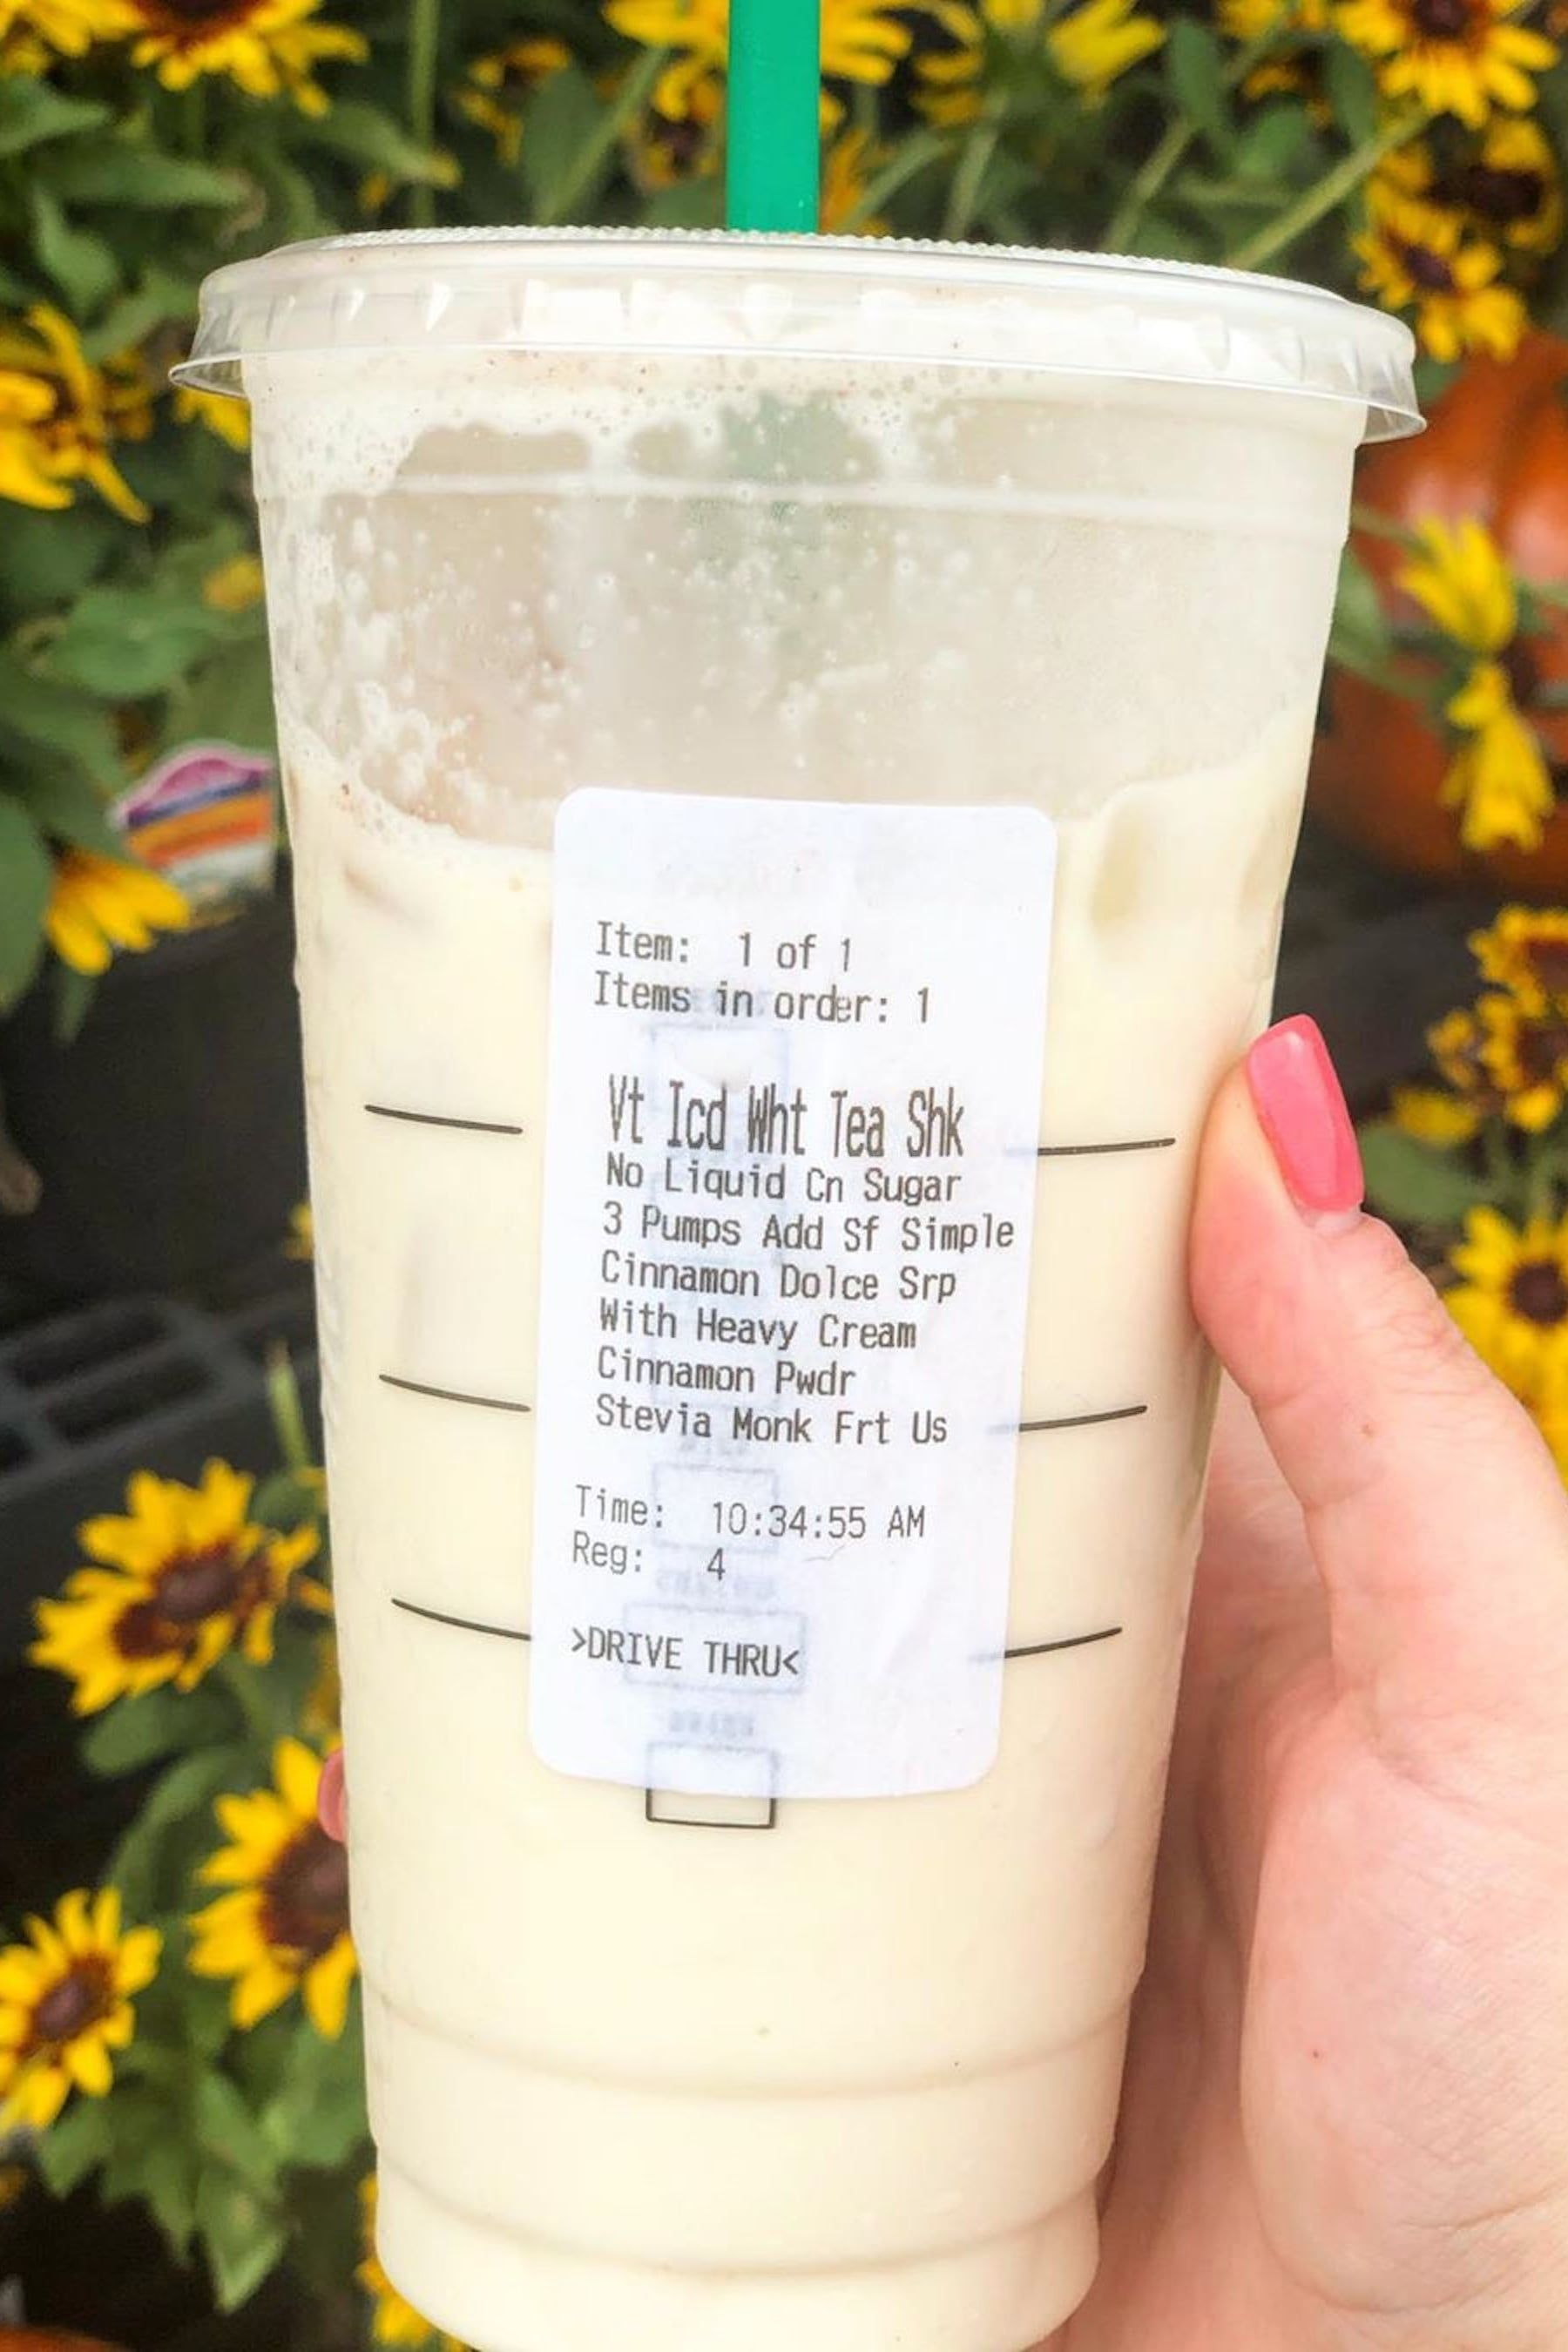 If You're on the Keto Diet, You've Got to Try the Latest Keto Drink at Starbucks